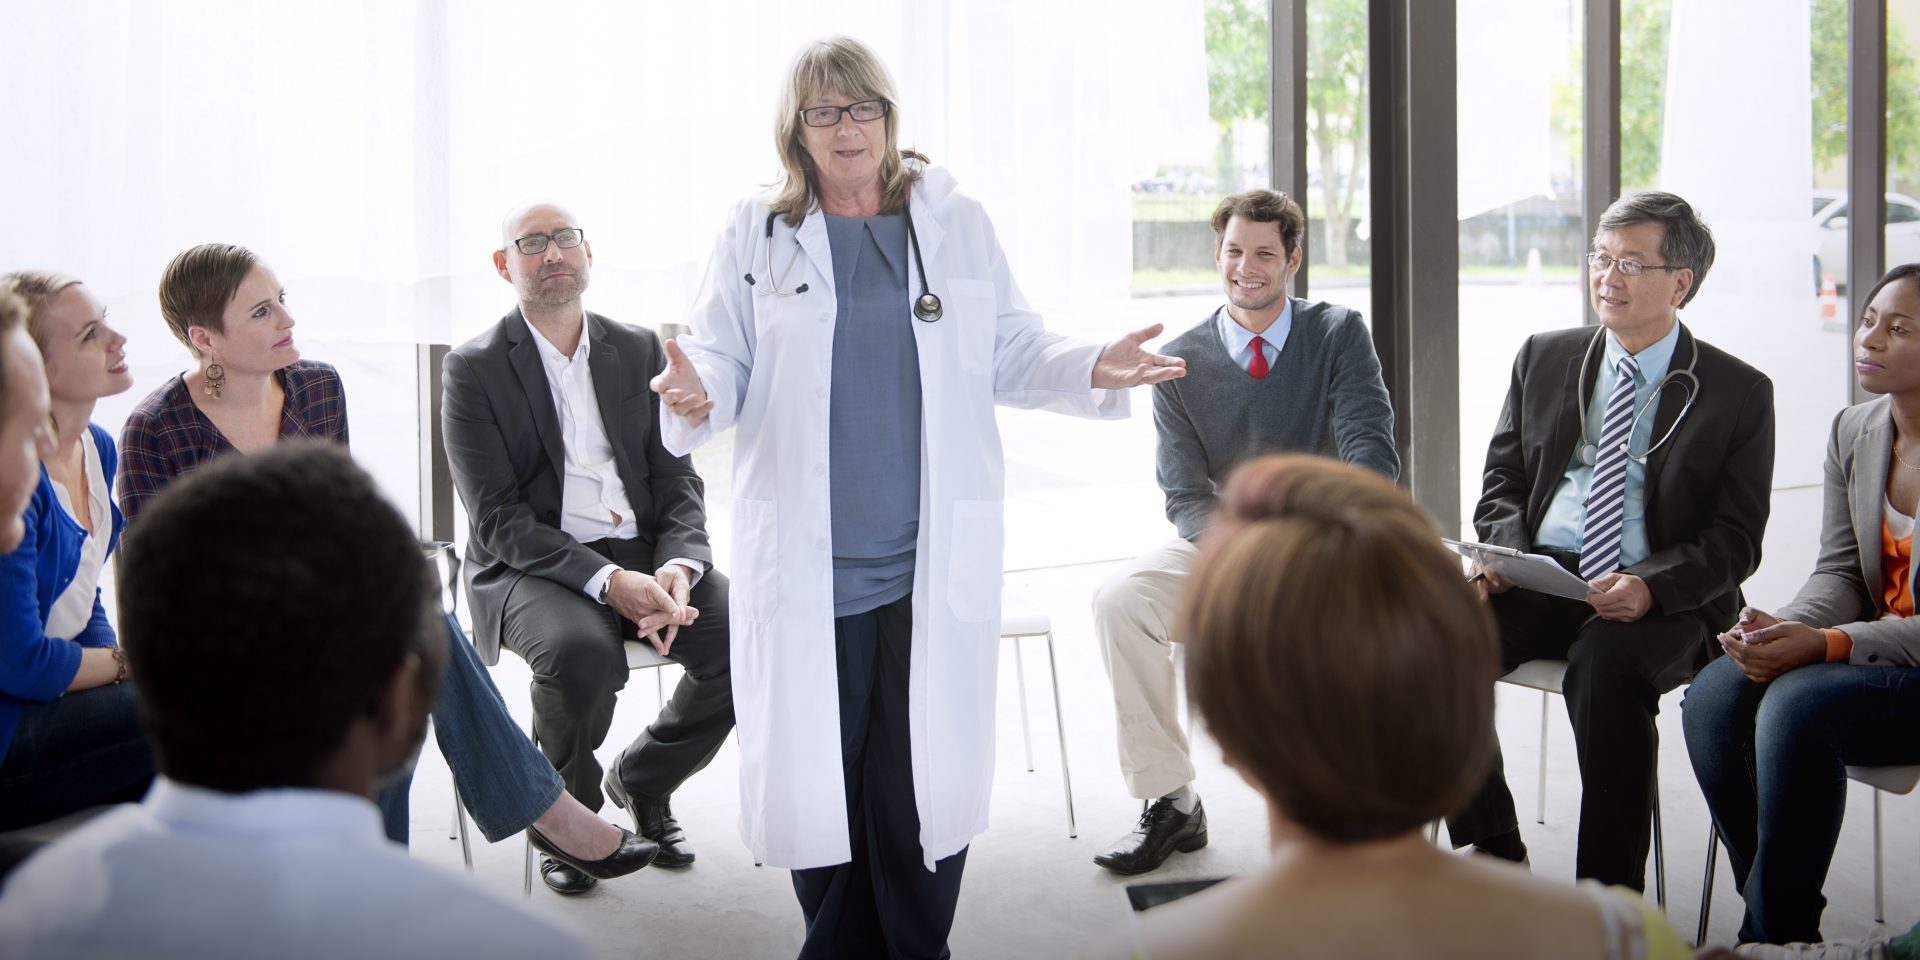 a medical physician in a white coat speaking to other doctors sitting around her